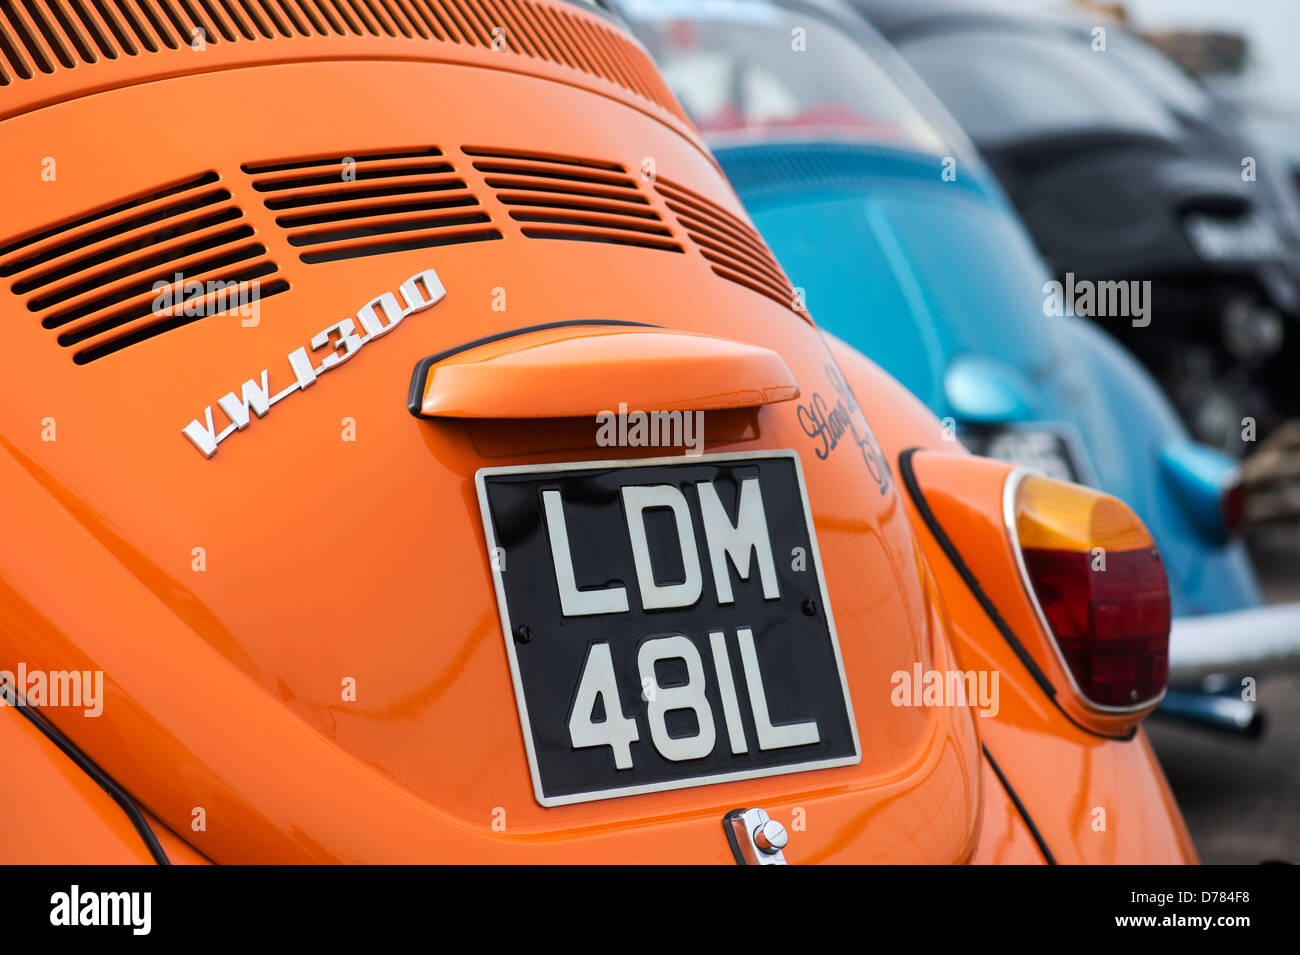 VW Beetle cars. Rear end - Stock Image